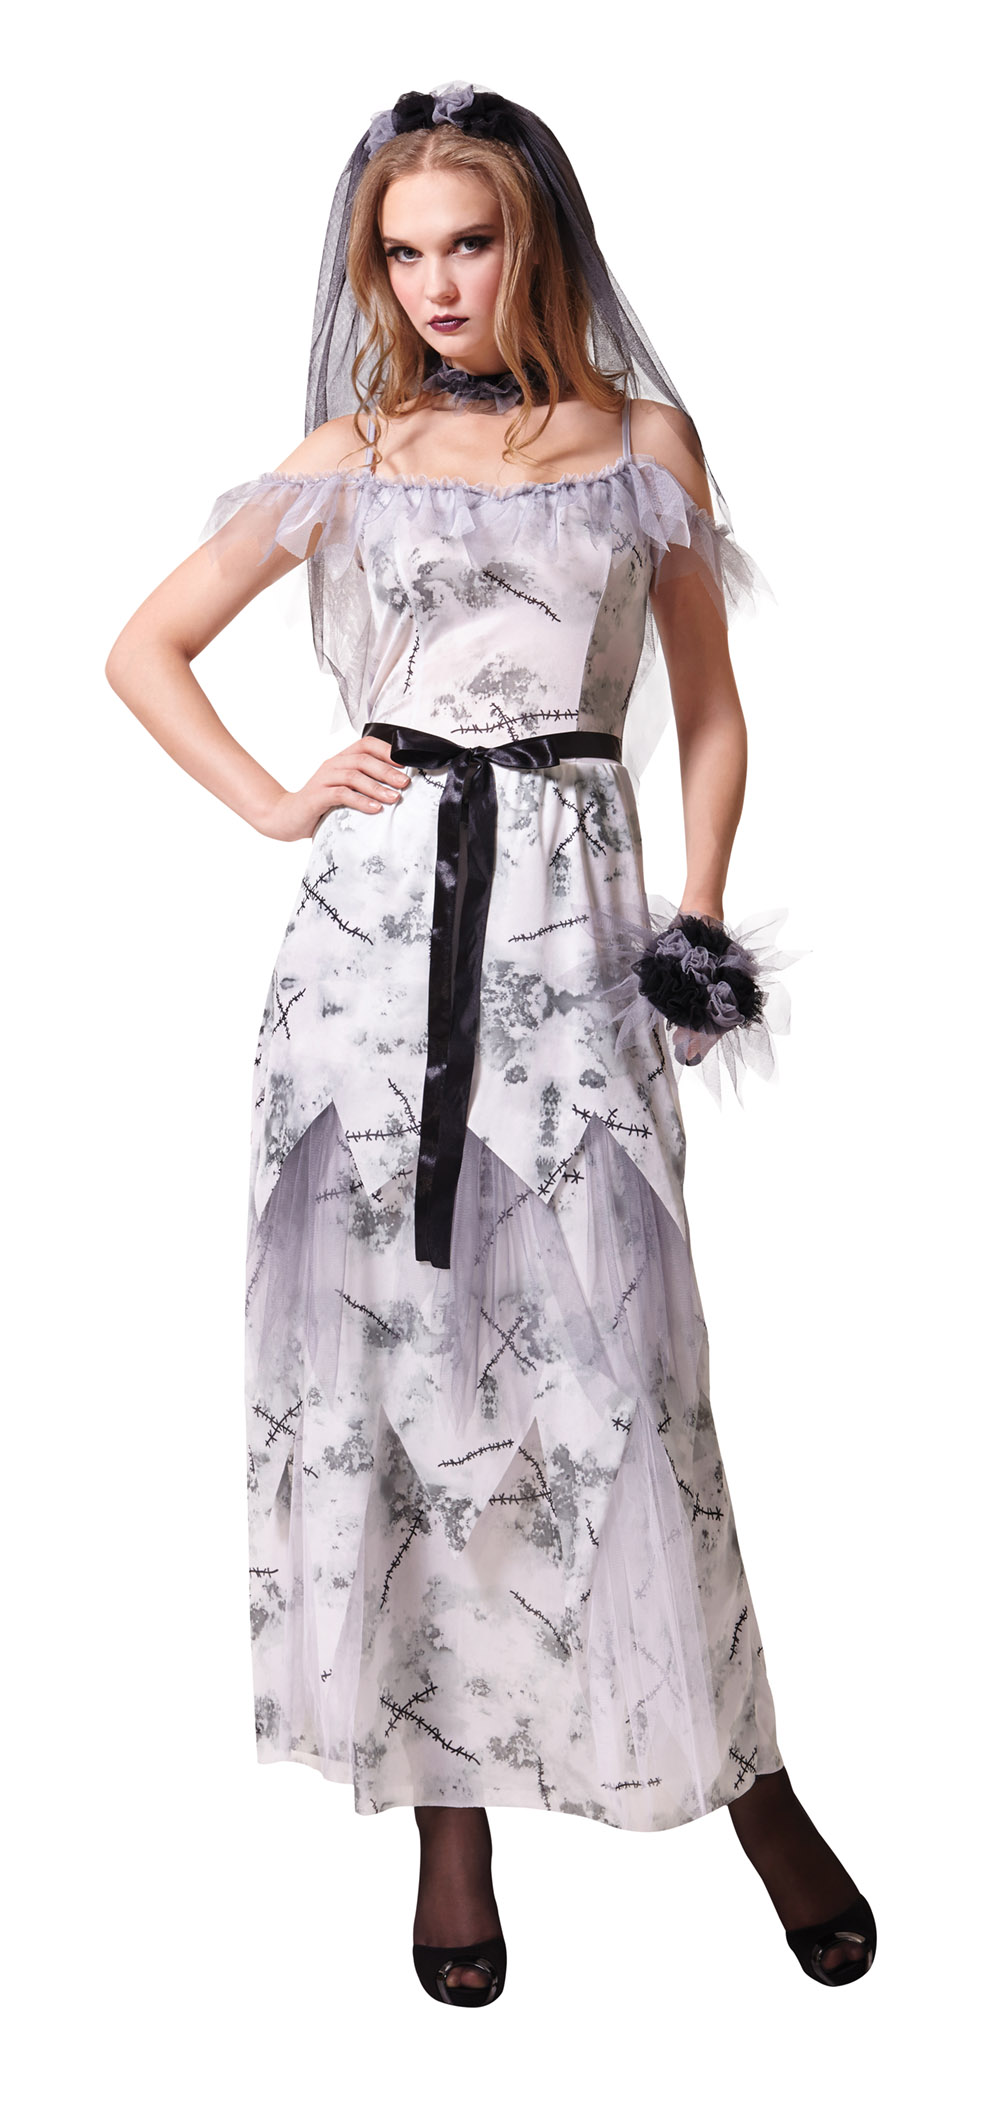 zombie bride short dress wedding dress halloween costume Zombie Wedding Fancy Dress Ideas